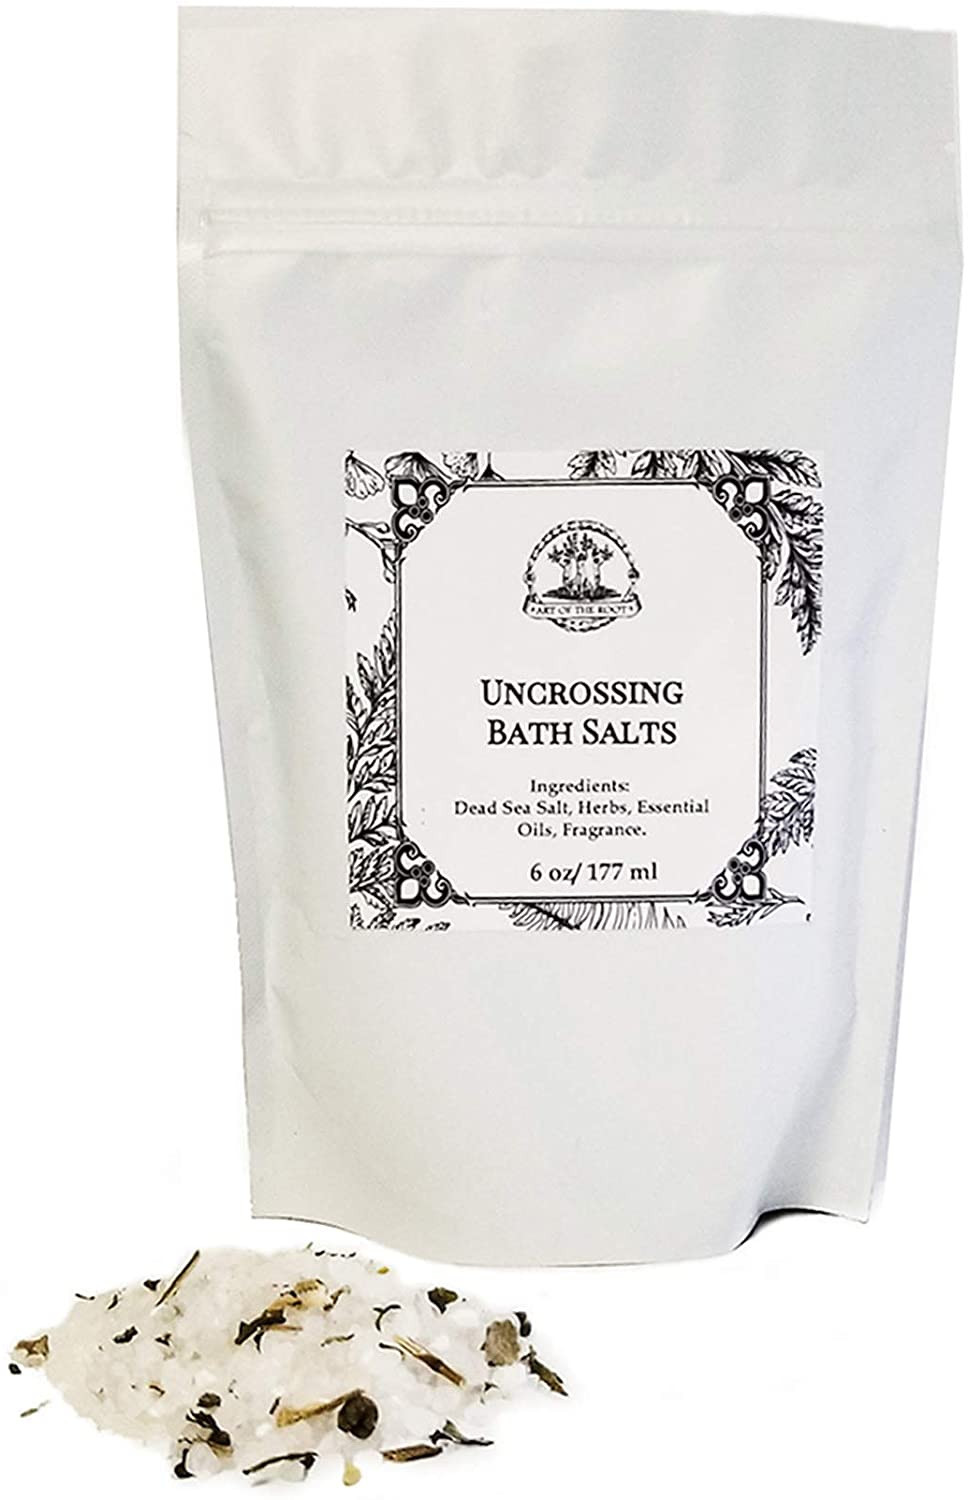 Uncrossing Bath Salts